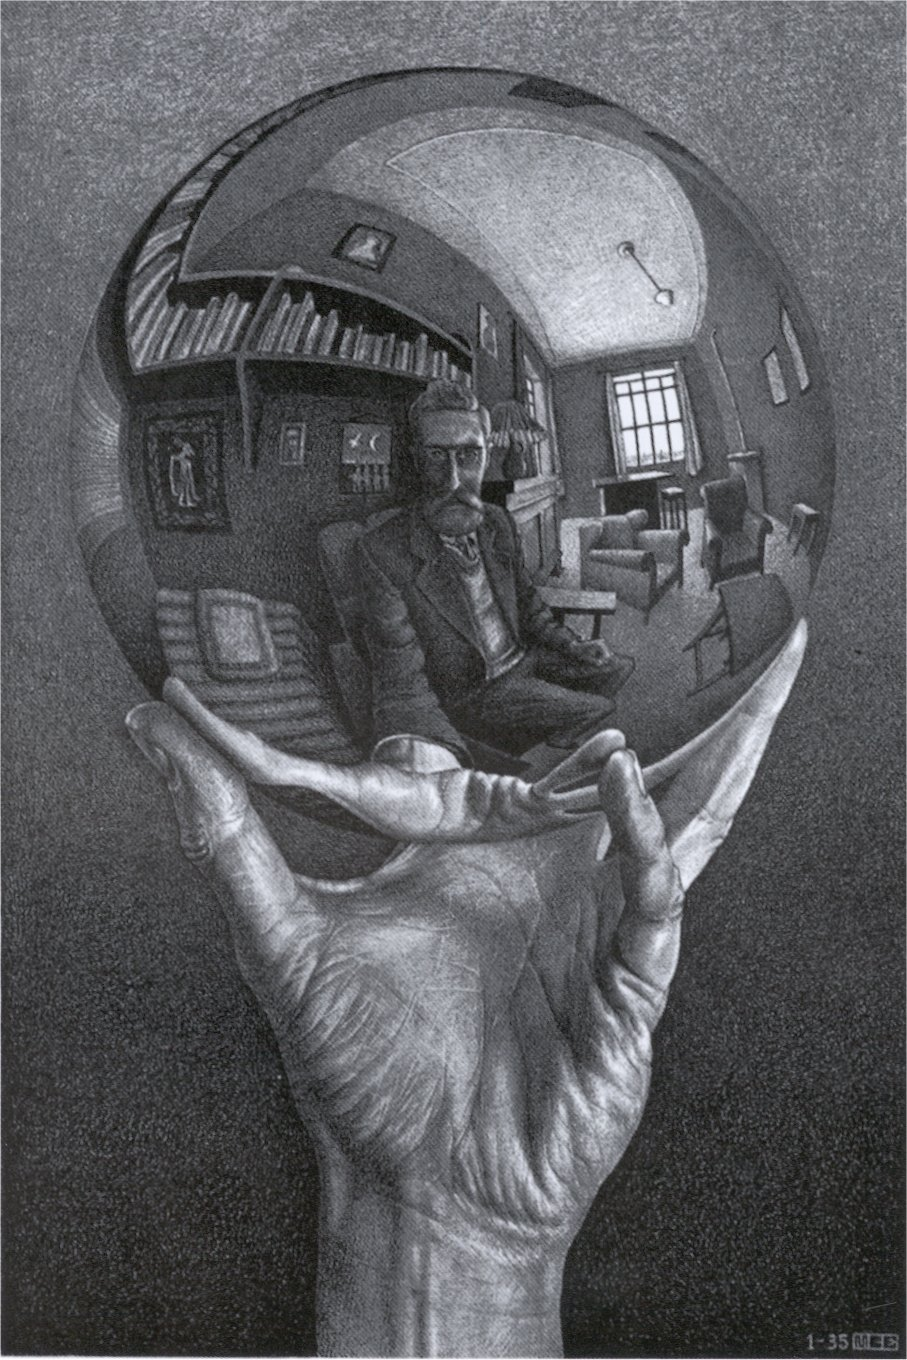 Drawn stone glass sphere Escher 1935 with Sphere M